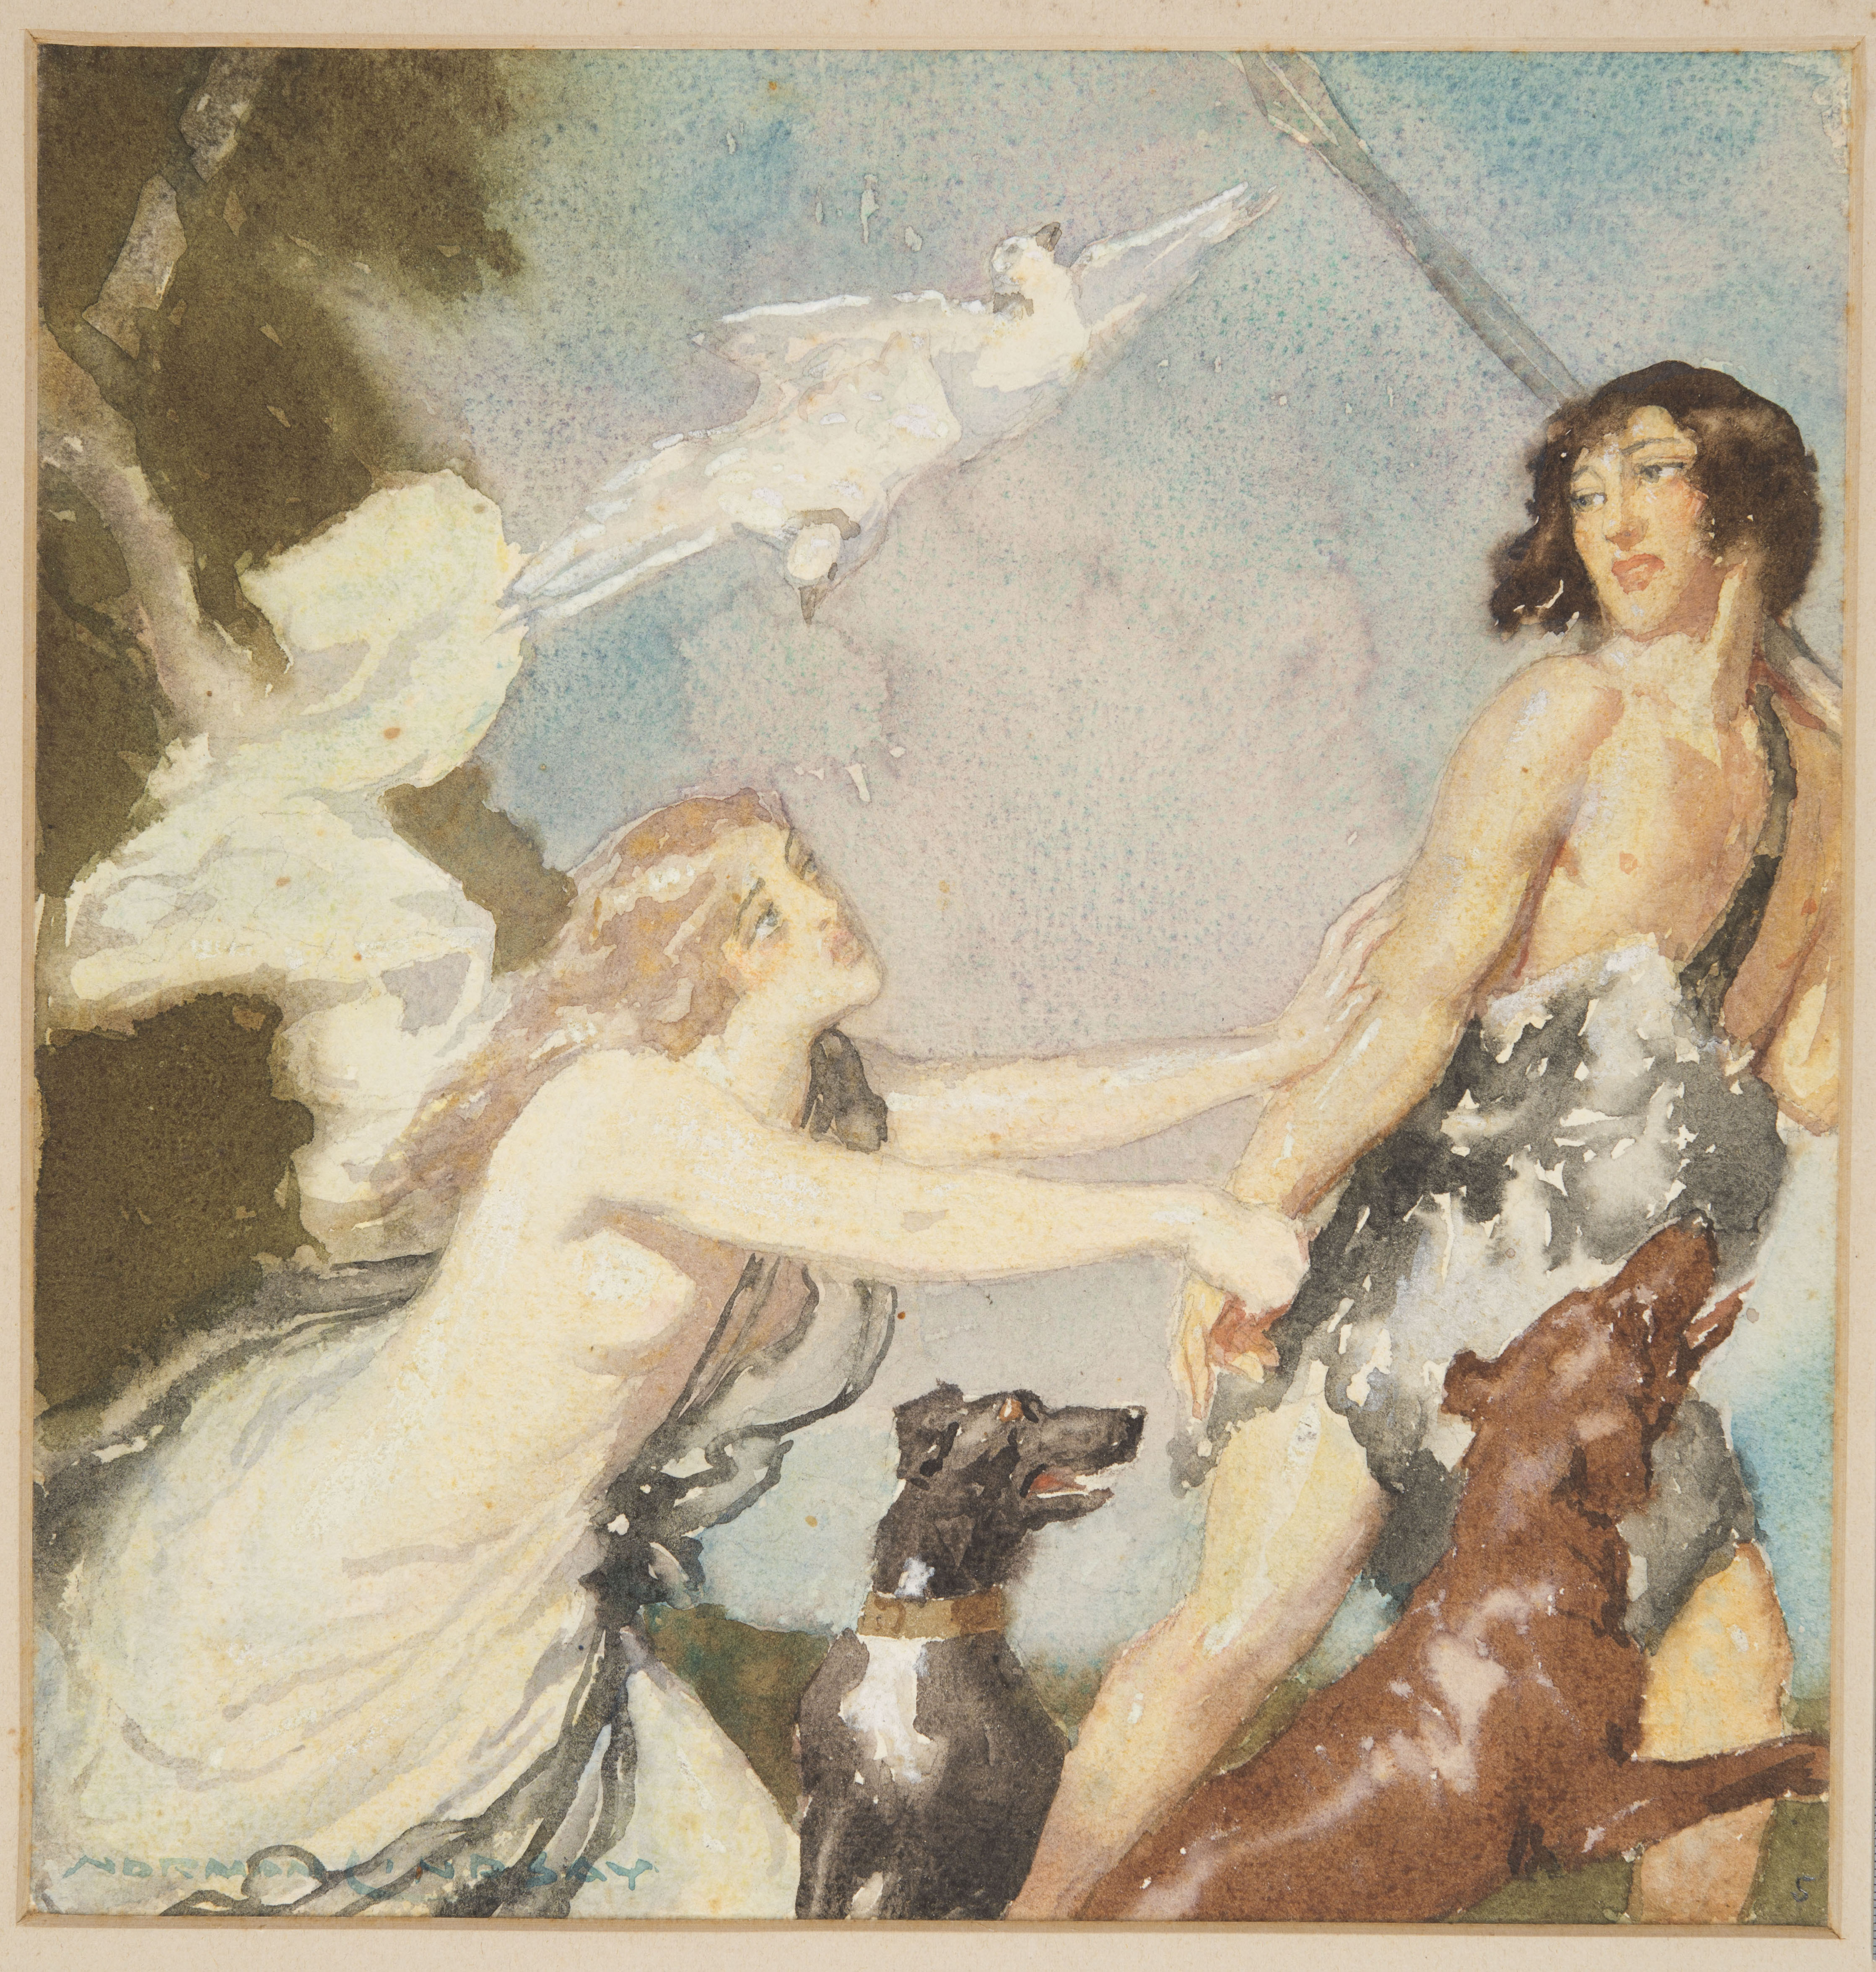 Original artwork for the cover of 'Songs of Love and Life', 1917